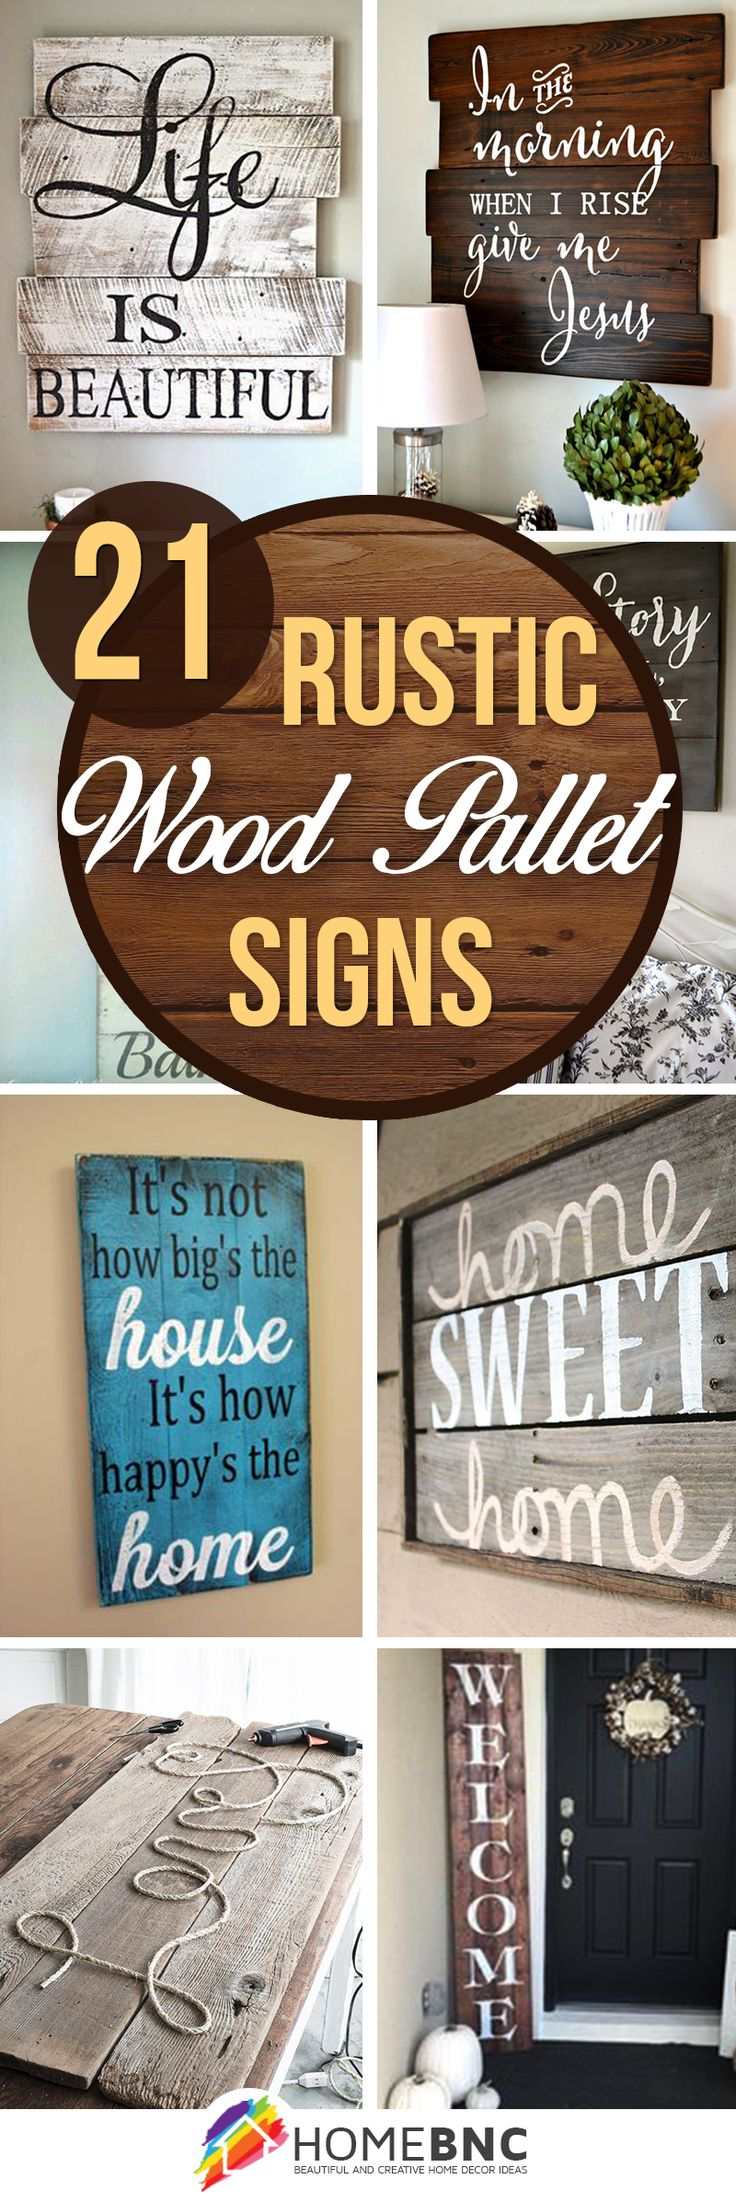 Wood finials for crafts - 21 Wood Signs To Add Rustic Glam To Your Decor